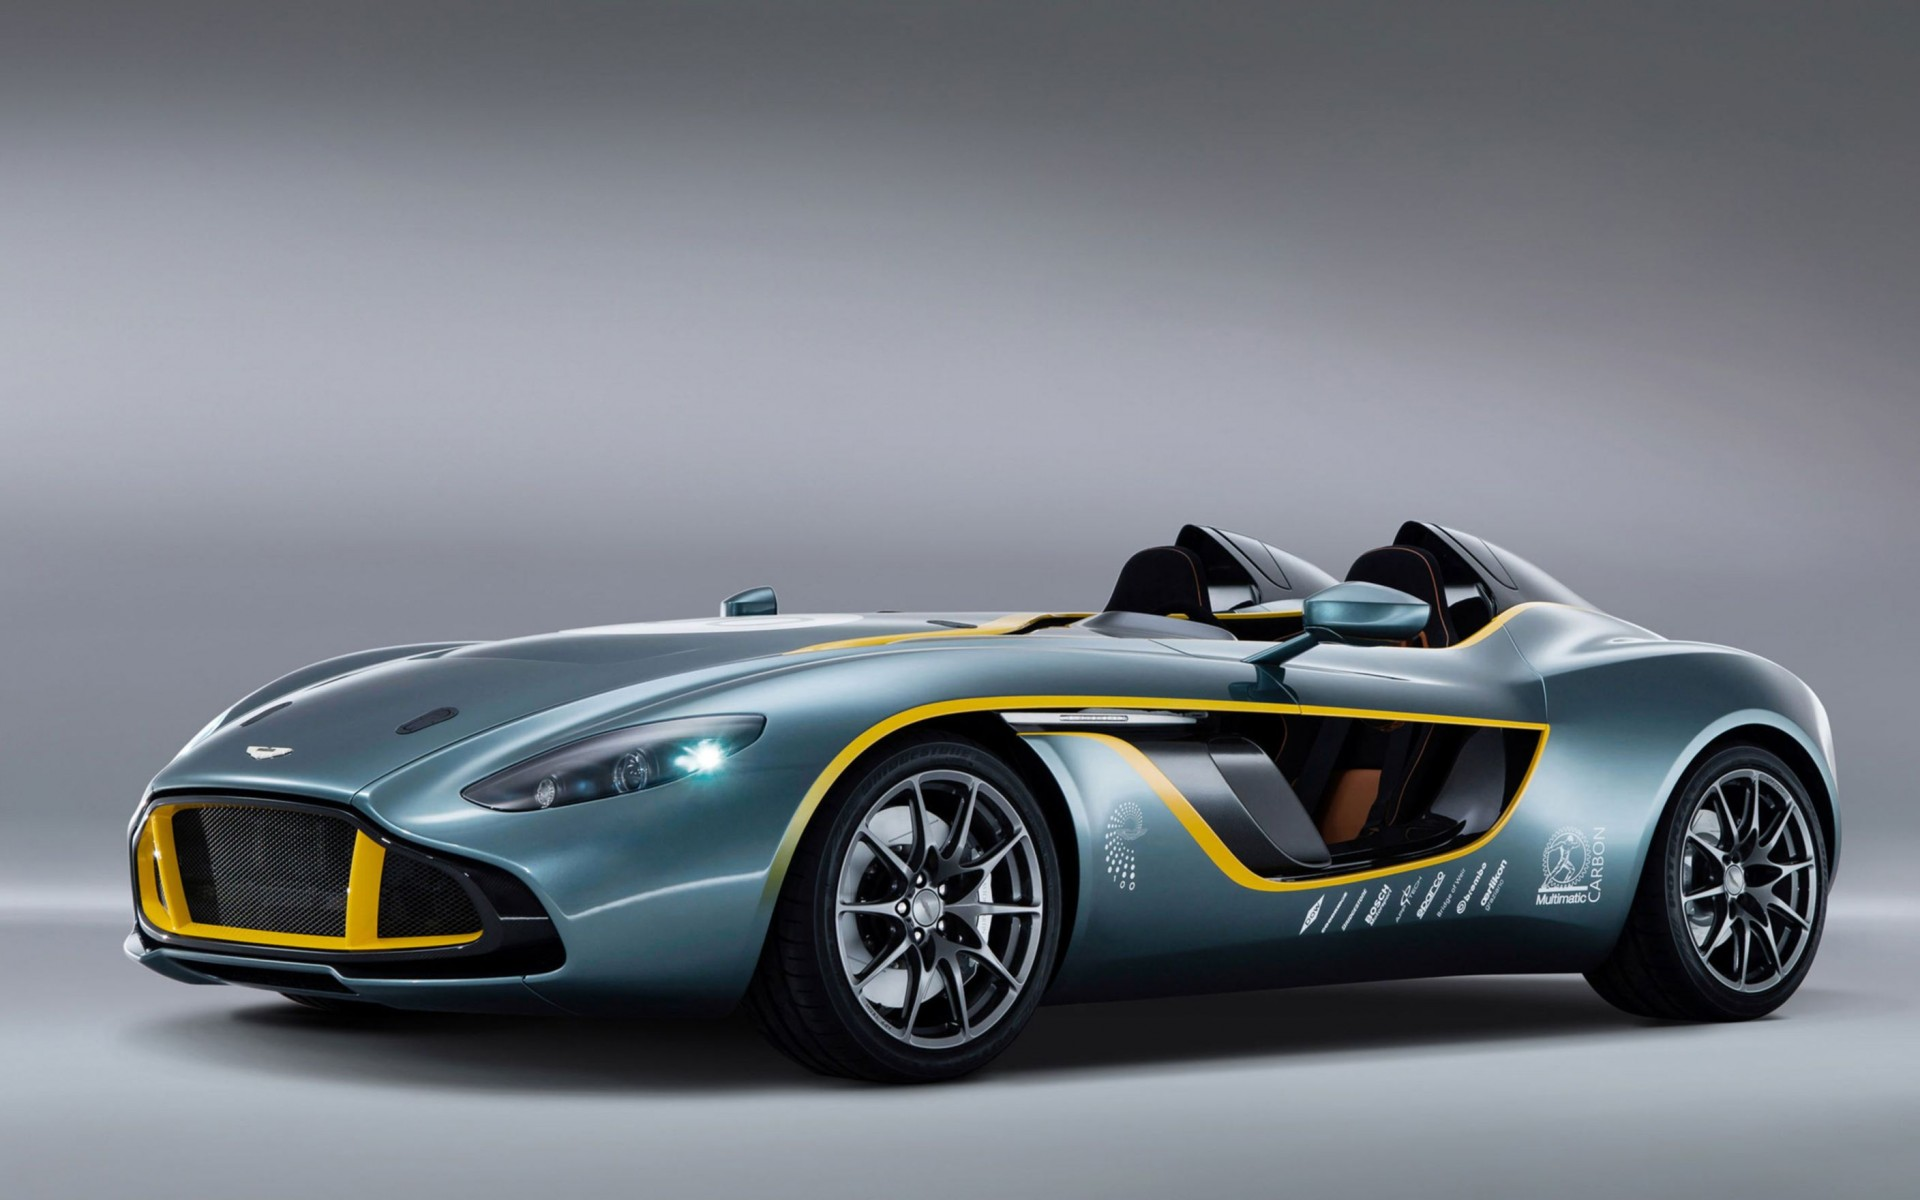 Aston Martin Cc100 Speedster Concept Wide Wallpaper